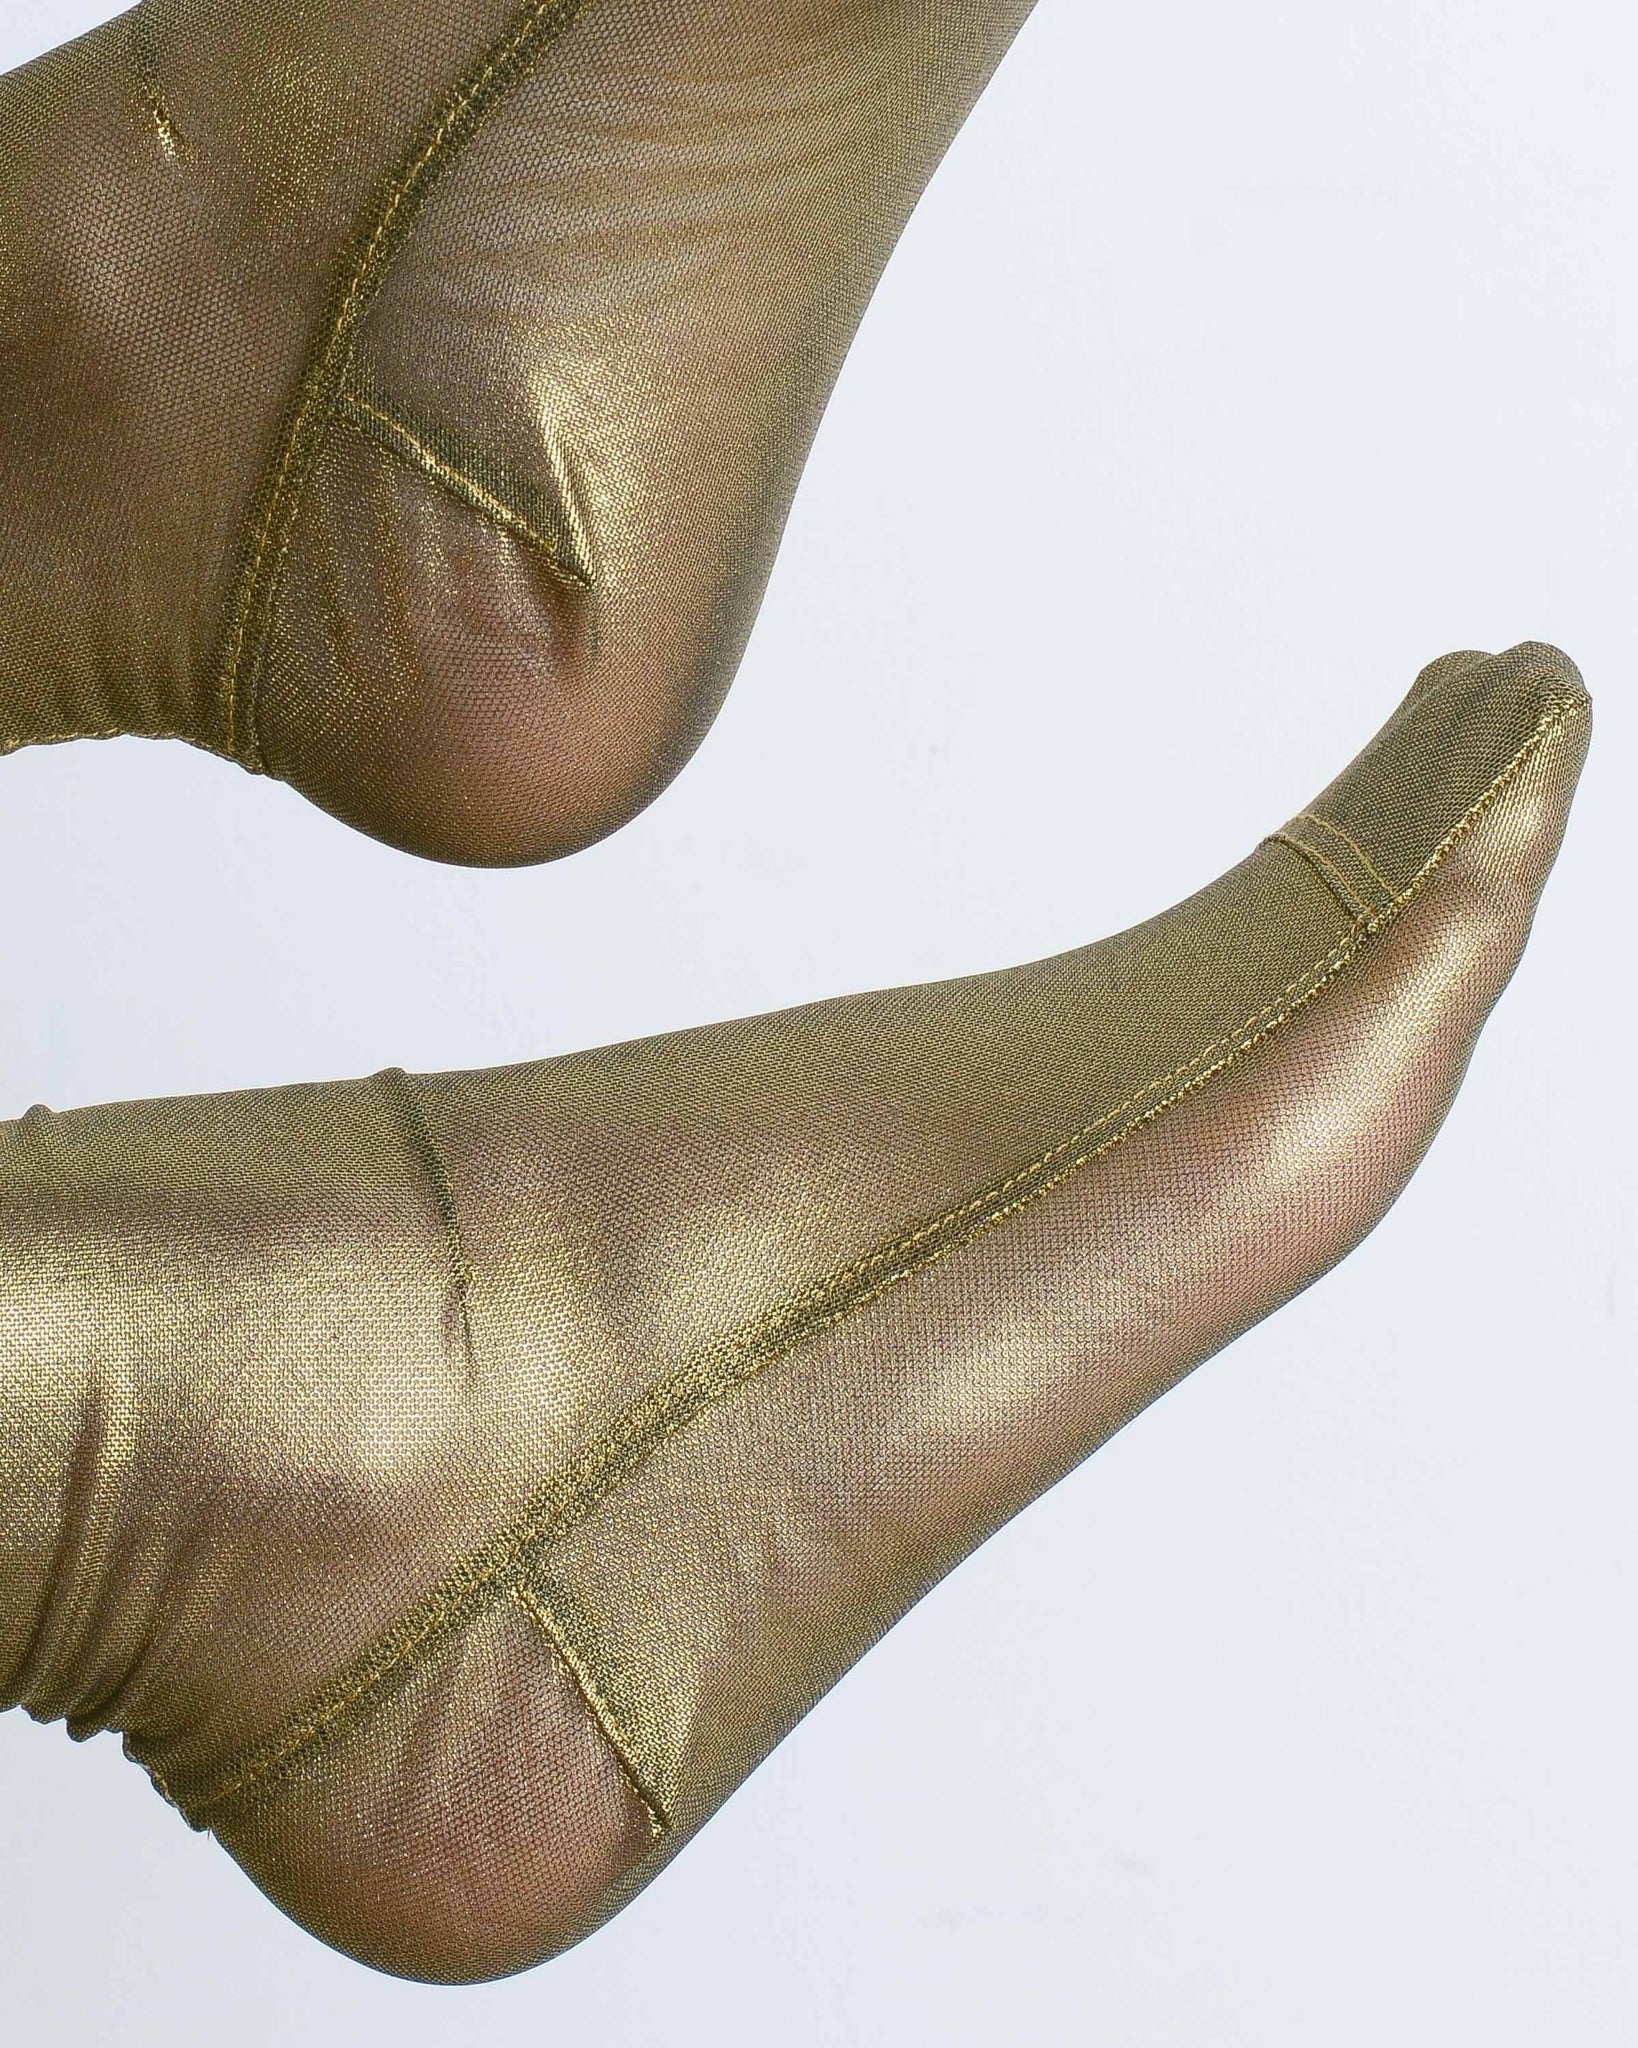 Gold Foil Socks